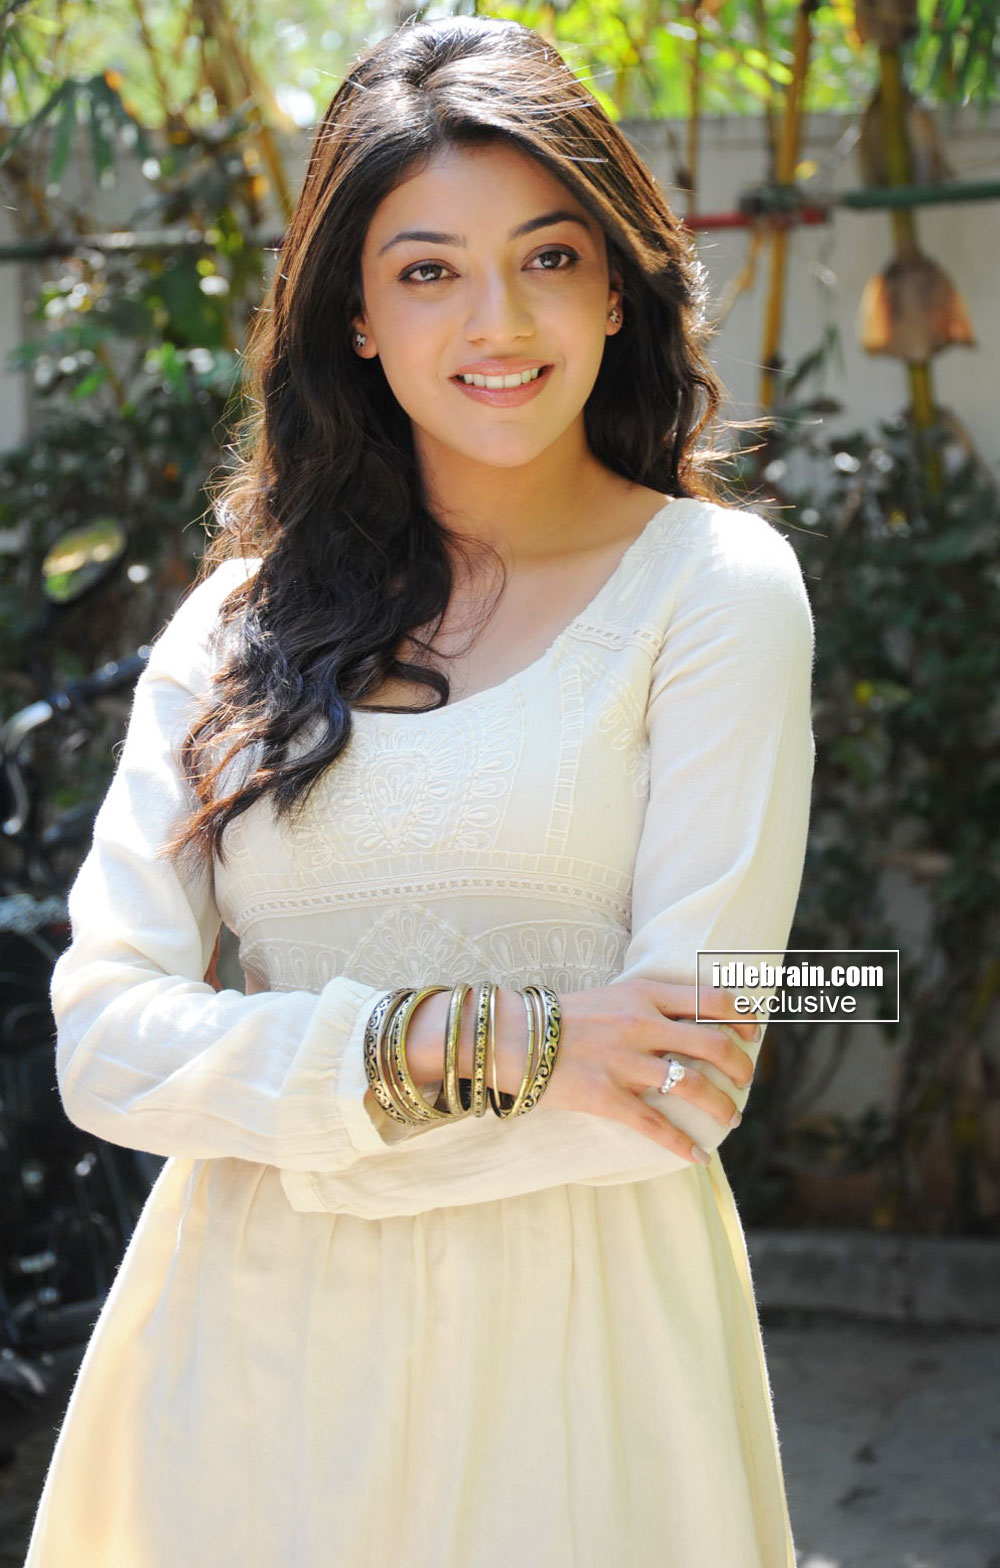 kajal agarwal-queen of beauty||official thread♥♥♥ - page 21